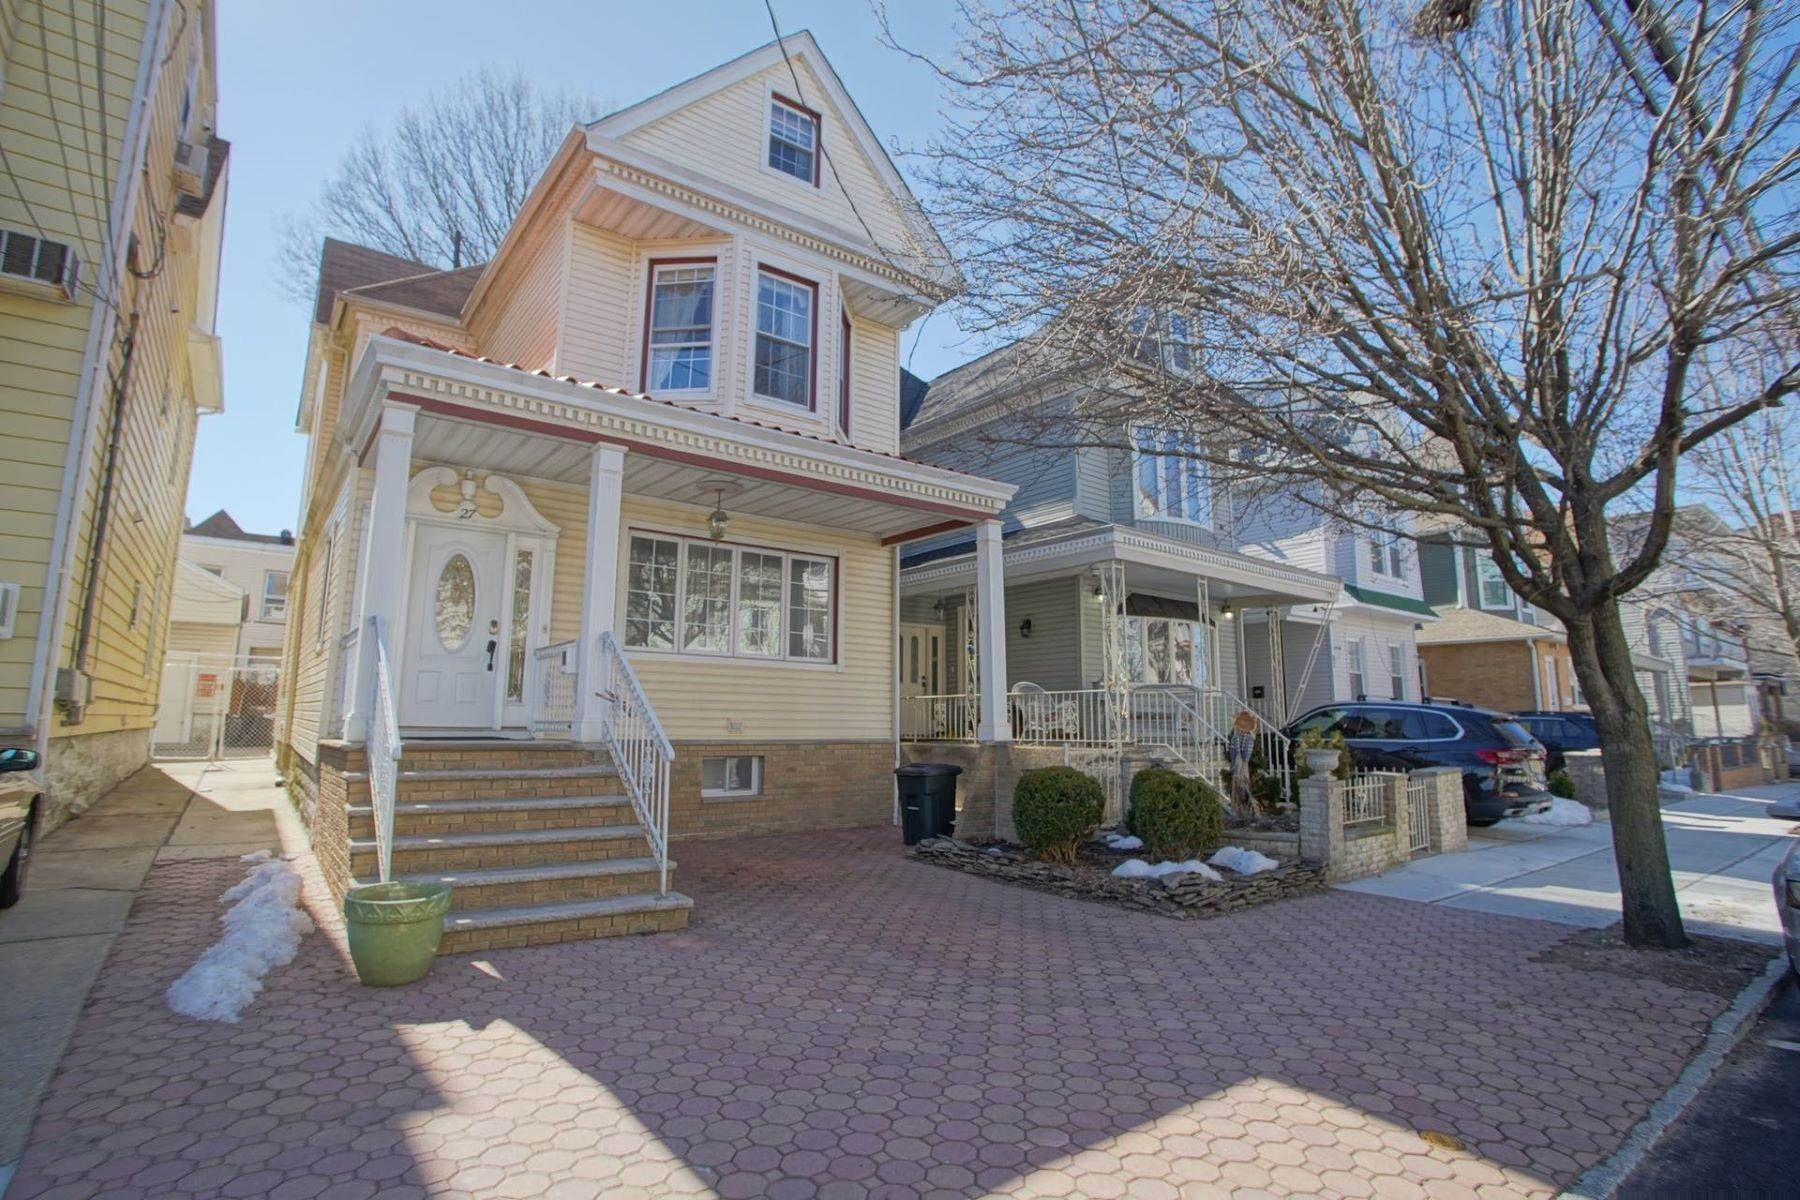 Single Family Homes for Sale at Old world charm meets modern day fabulous! 27 47th Street Weehawken, New Jersey 07086 United States